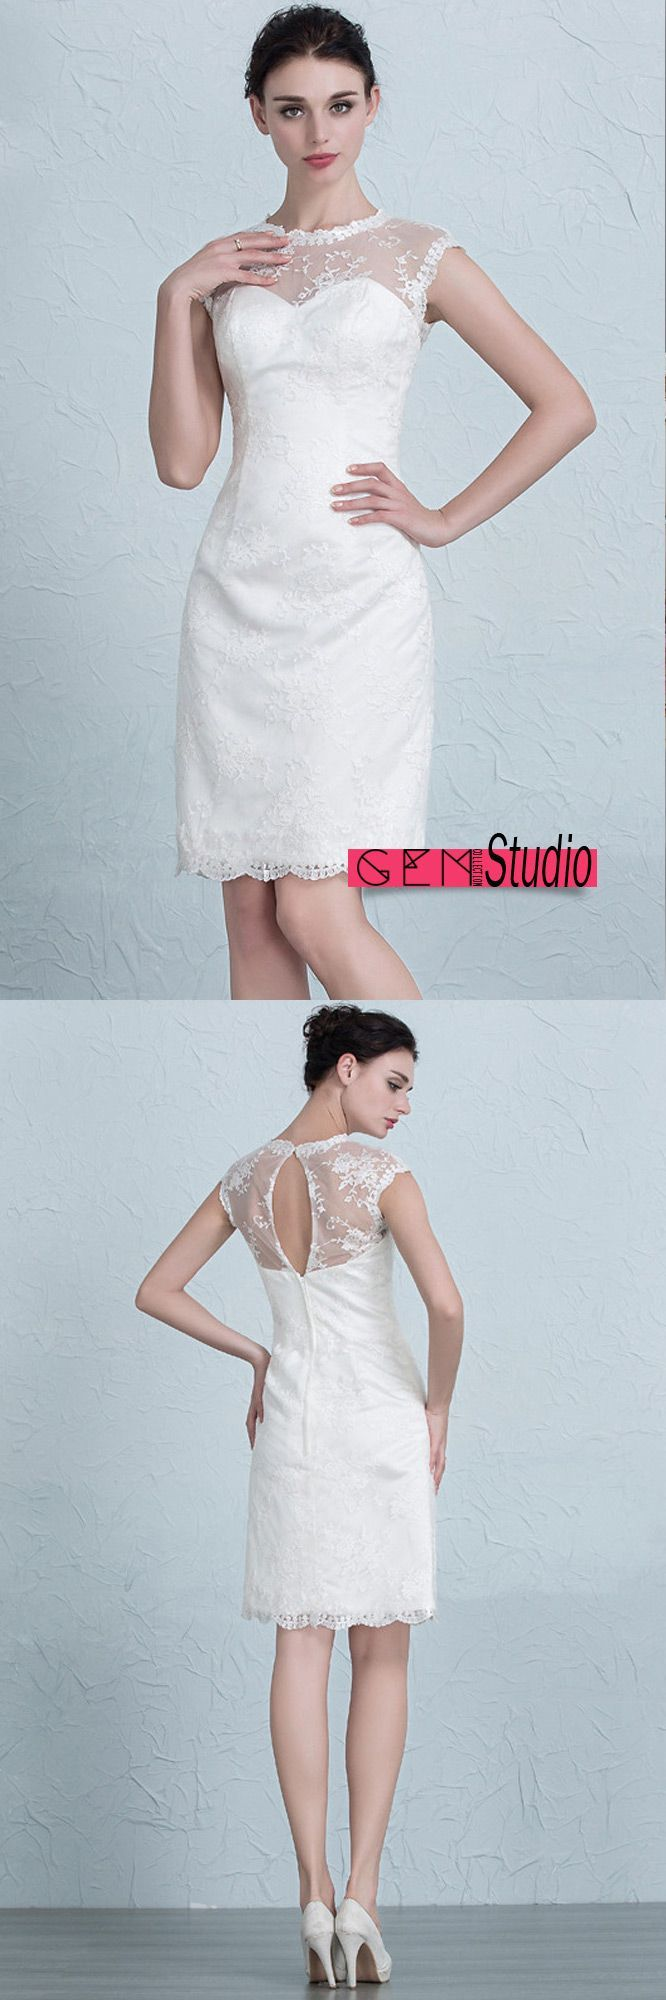 Dorable Short Lace Wedding Reception Dress Picture Collection - All ...